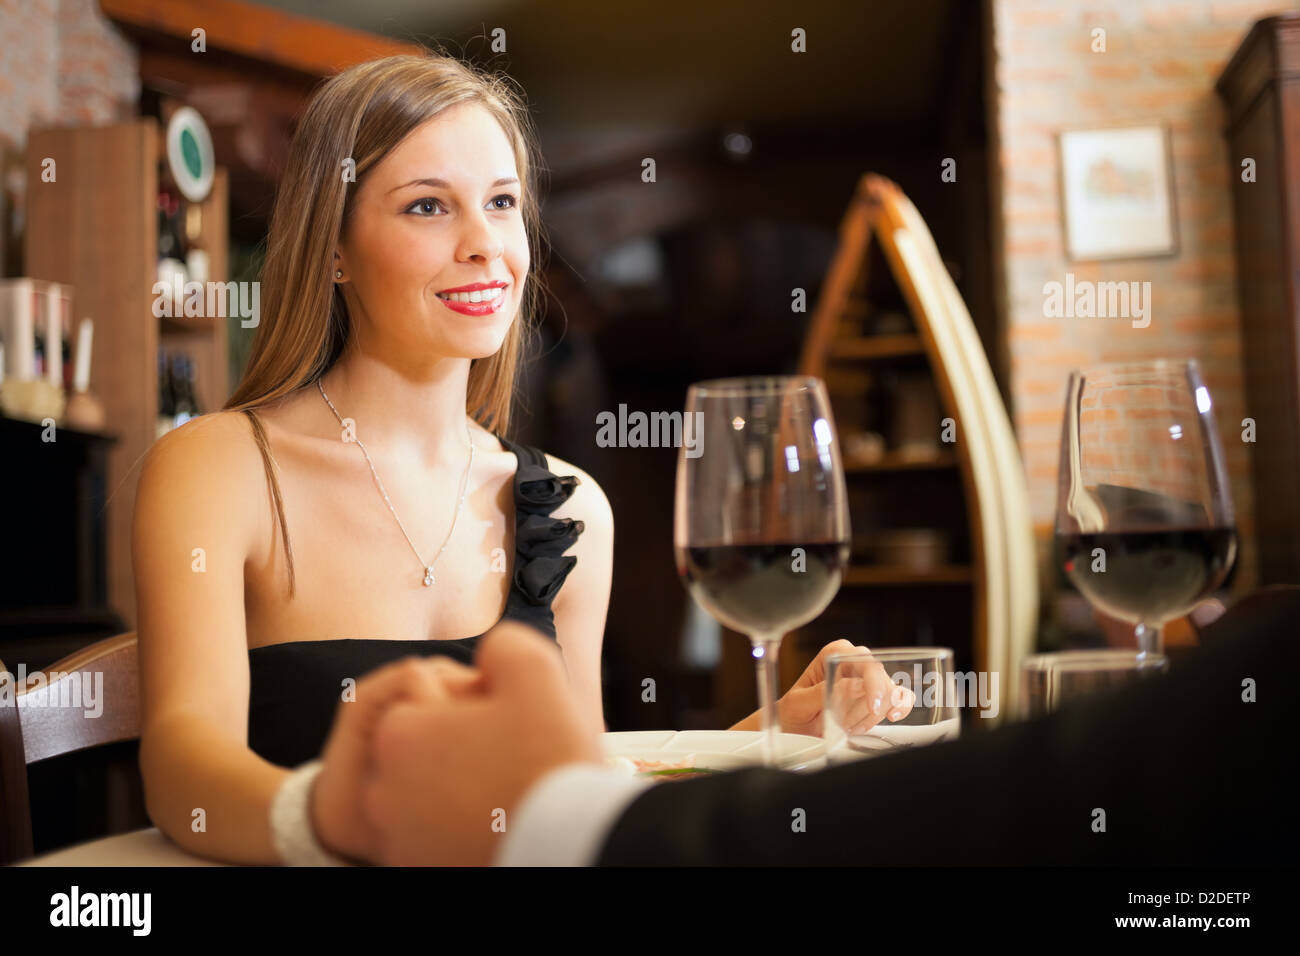 Couple Having A Date In A Luxury Restaurant Stock Photo Alamy